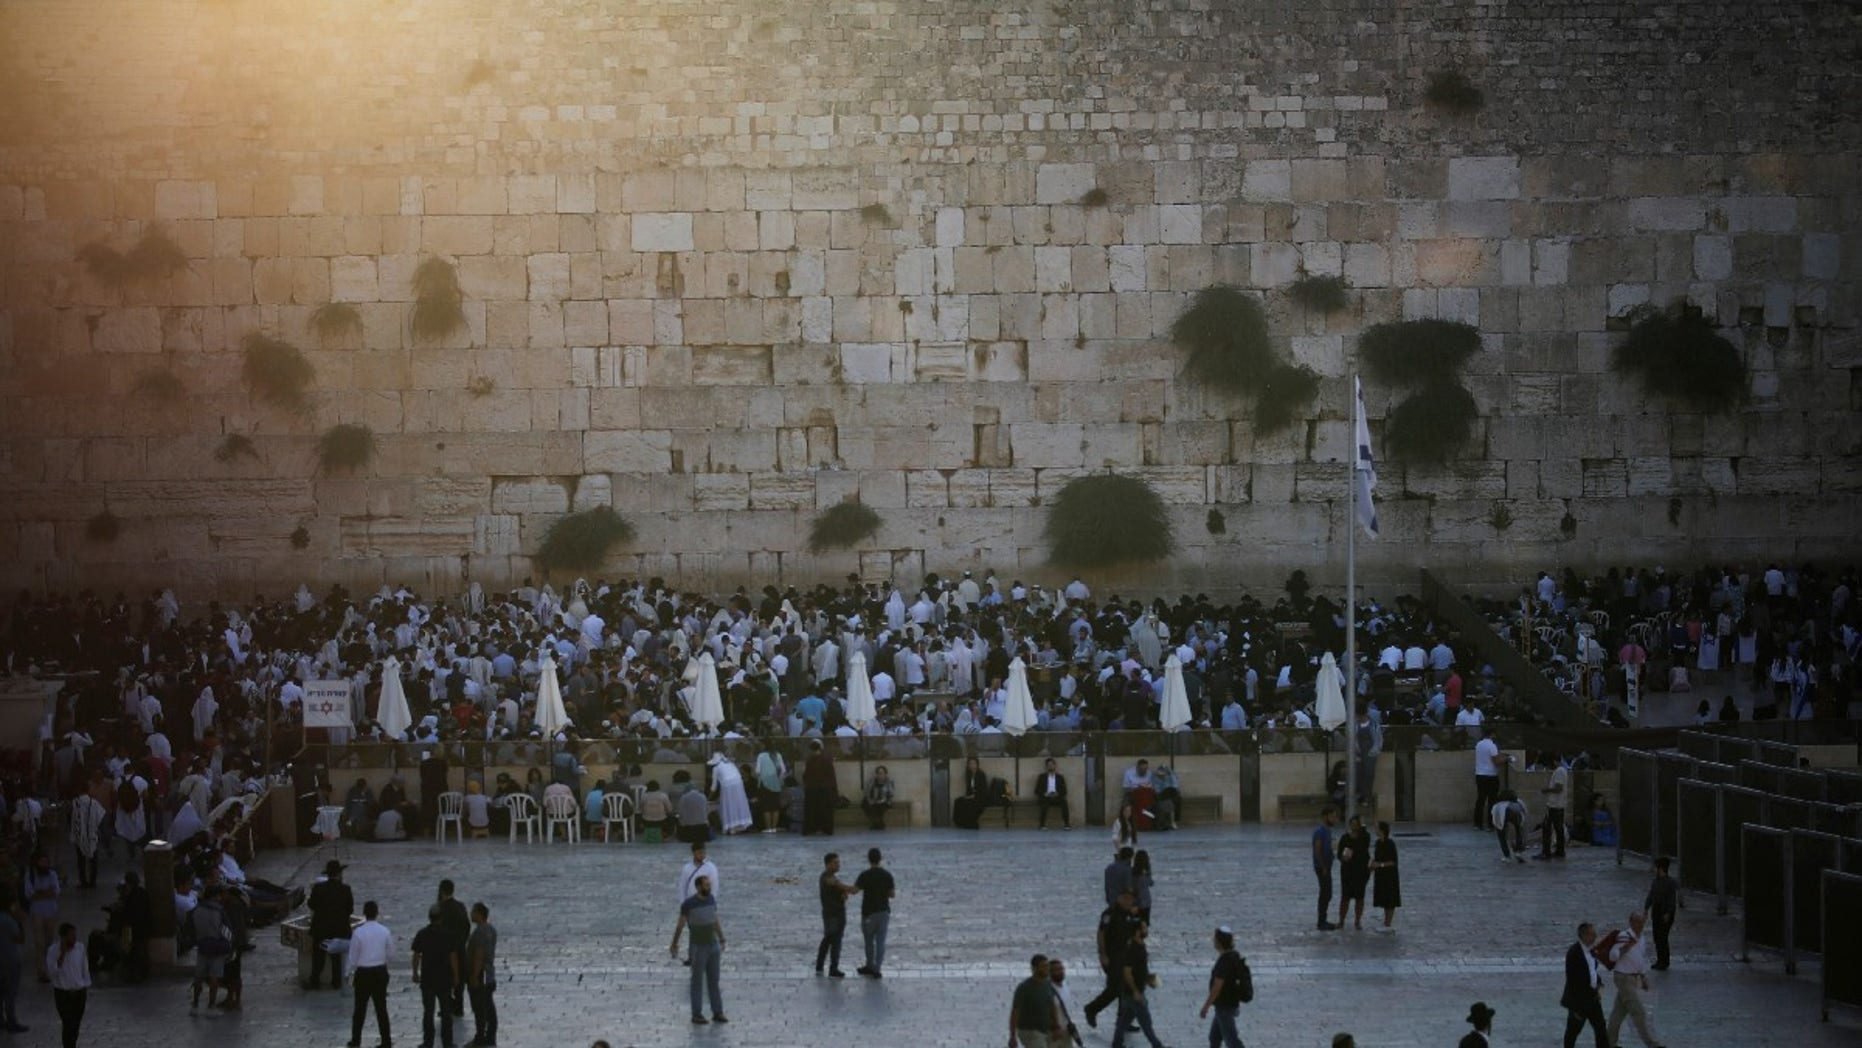 Jewish worshipers pray in front of the Western Wall on Tisha B'Av, a day of fasting and lament, in Jerusalem's Old City August 1, 2017.